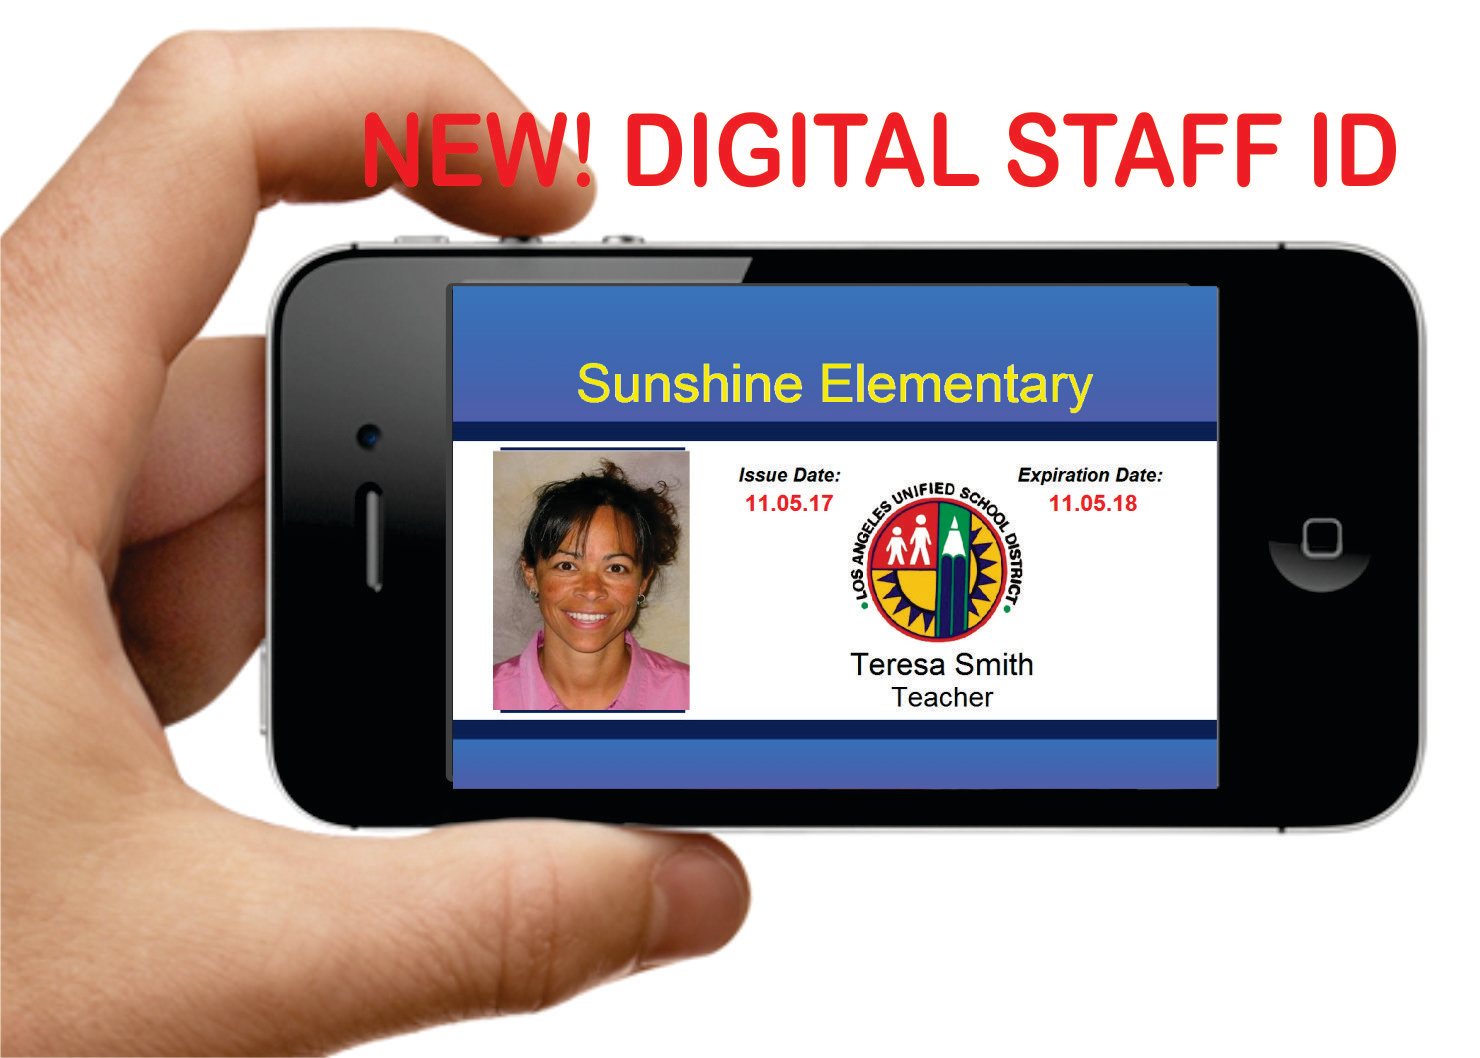 Digital Staff I.D.